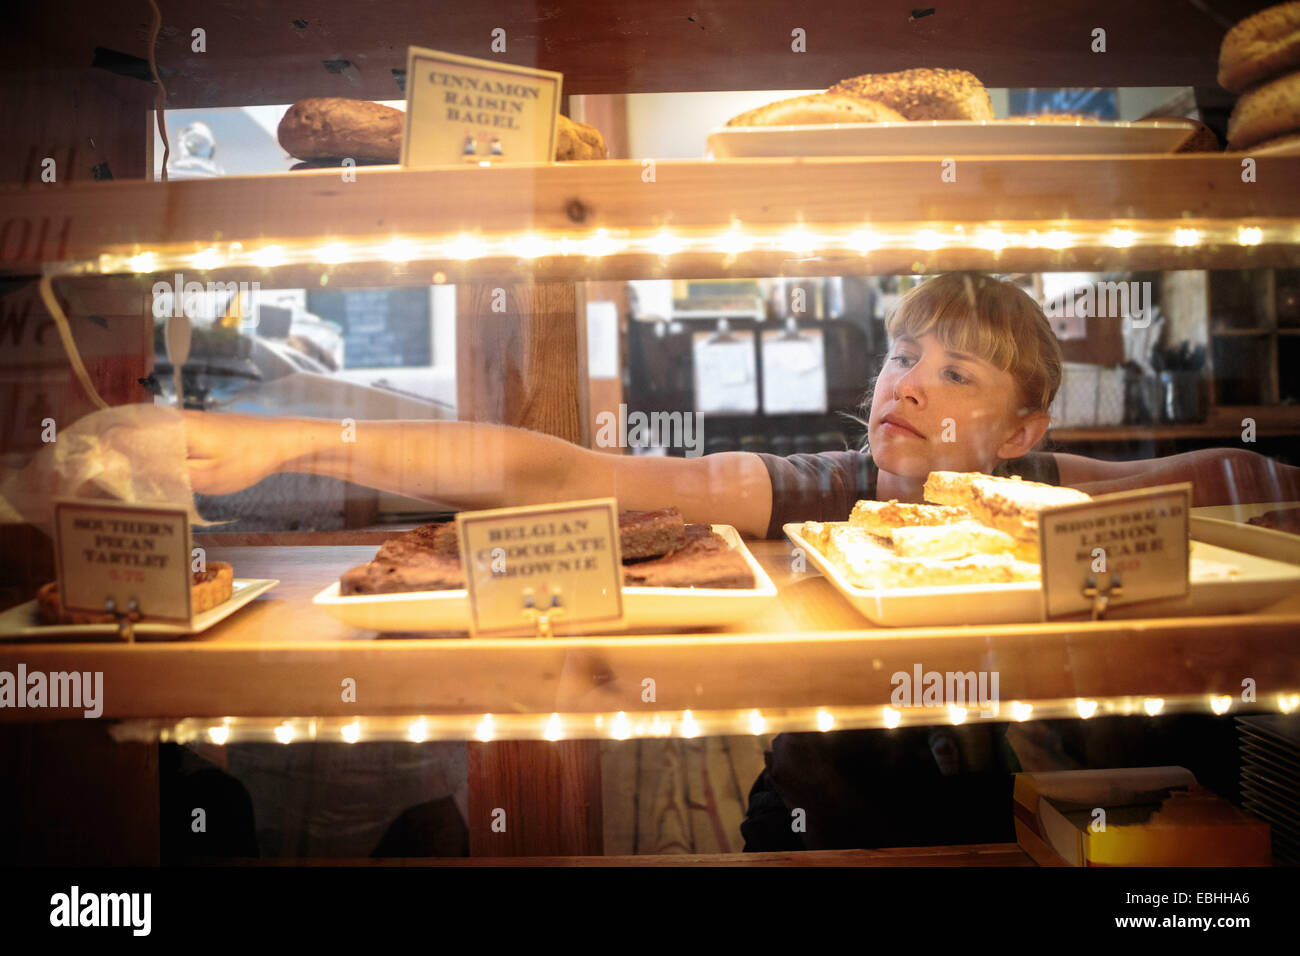 Female shop assistant picking up cake from display cabinet in country store - Stock Image